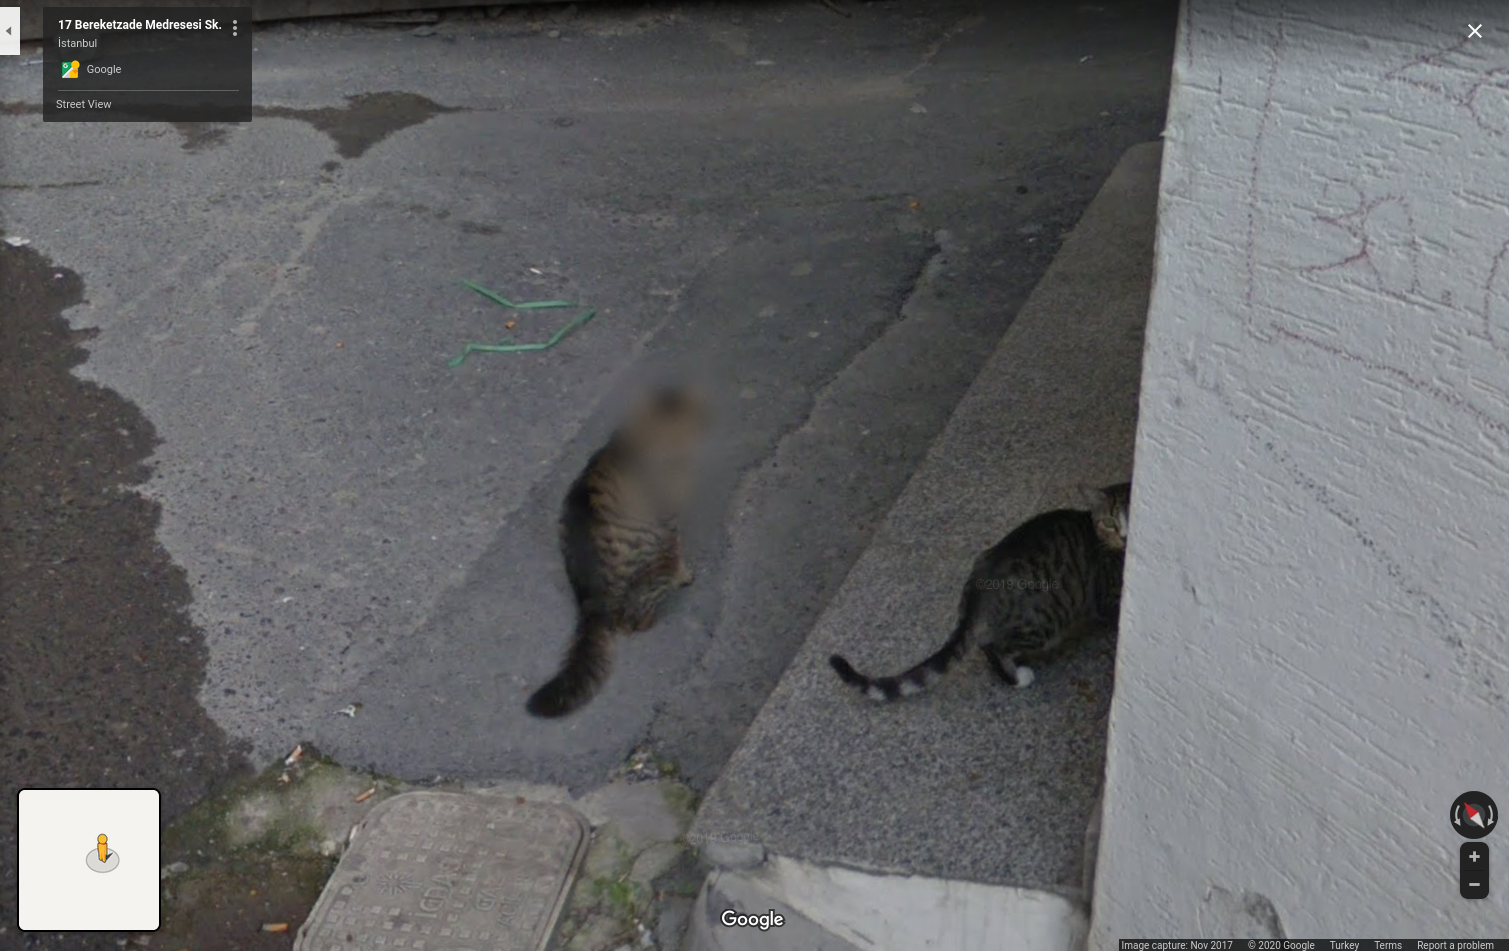 Google's algorithm blurred this cat's face...